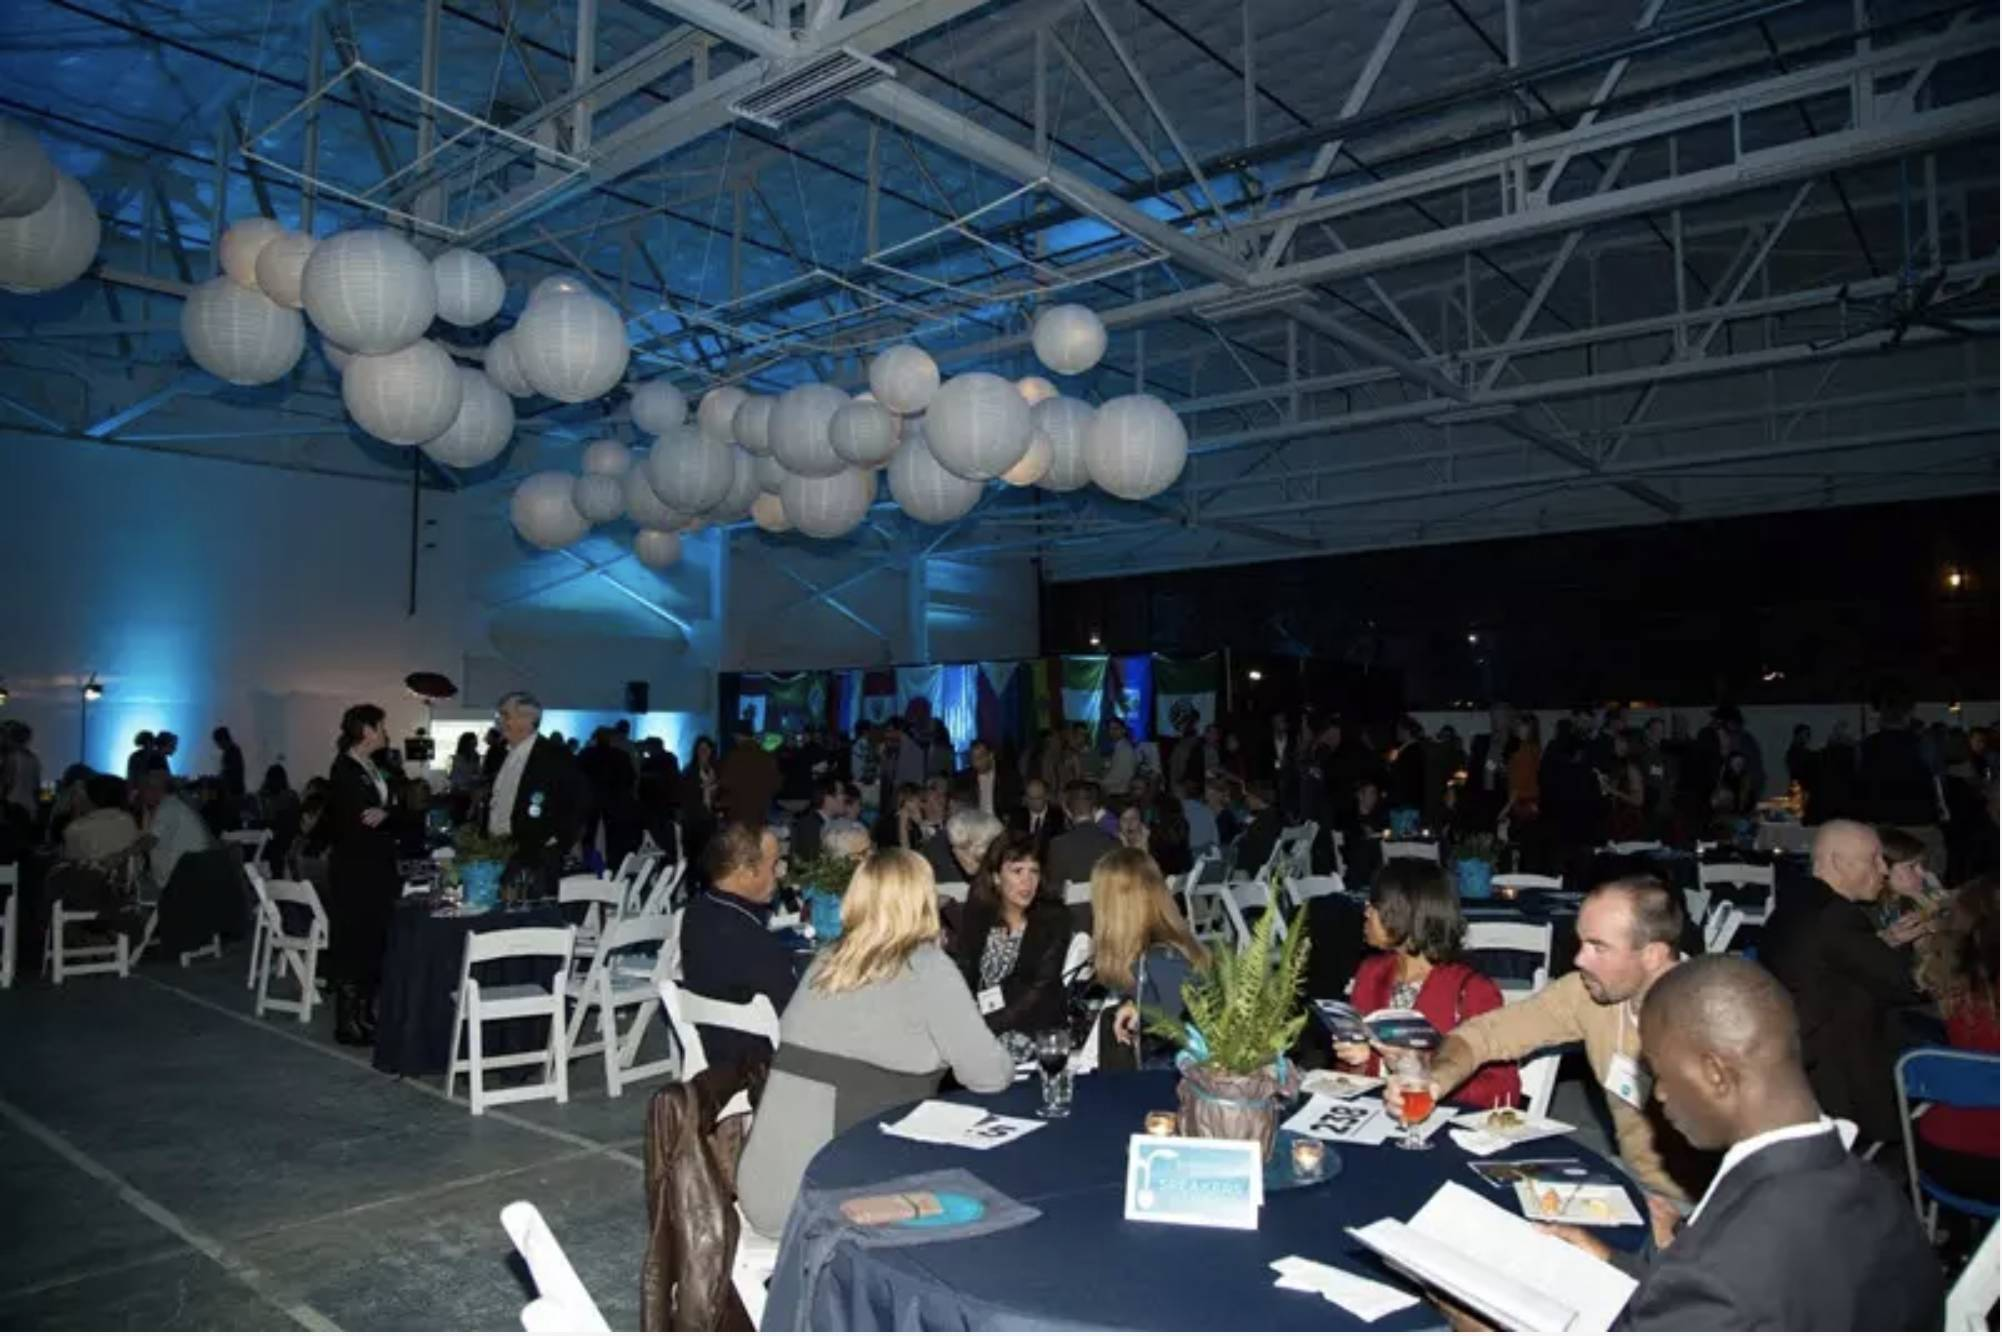 Attendees of EarthCorps' annual fundraiser mingle at tables.